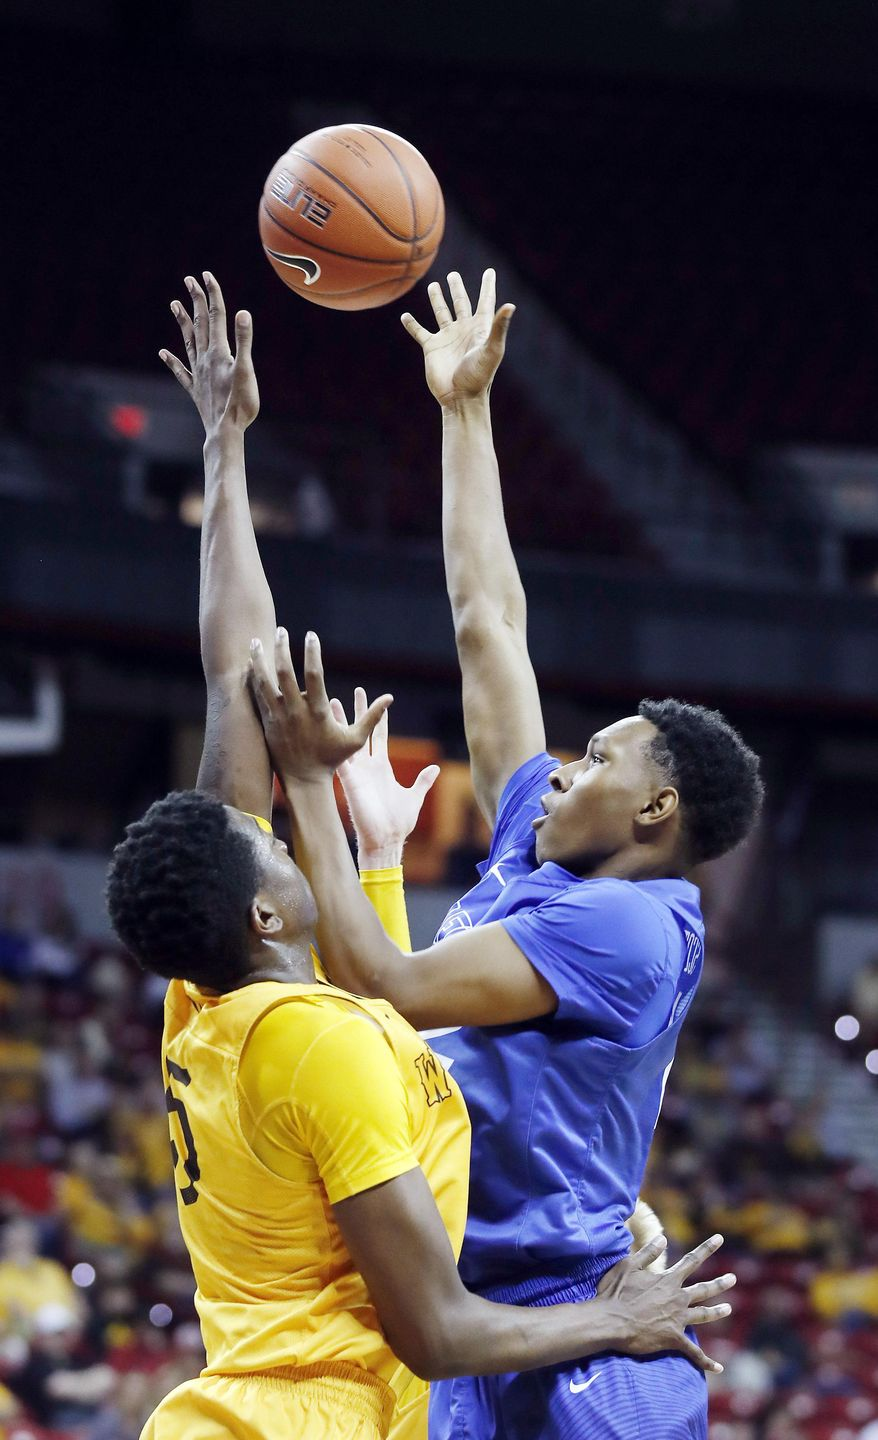 Air Force's Lavelle Scottie shoots as Wyoming's Alan Herndon defends during the second half of an NCAA college basketball game in the Mountain West Conference tournament Wednesday, March 8, 2017, in Las Vegas. Air Force defeated Wyoming 83-68. (AP Photo/Isaac Brekken)